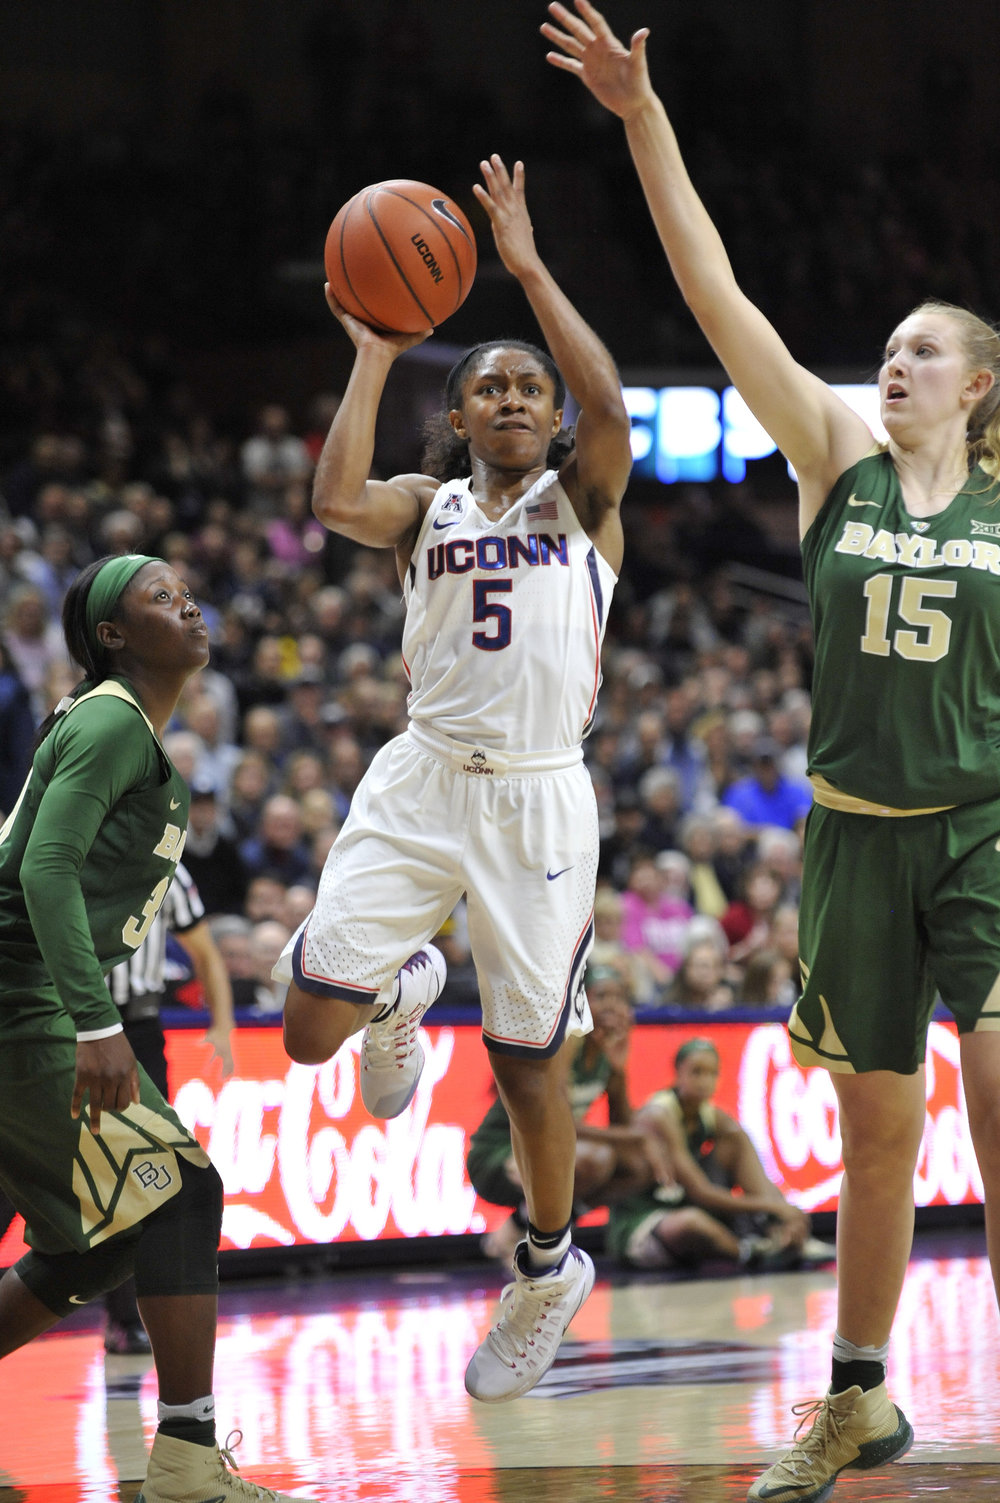 Nov. 17, 2016 UConn Women's Basketball vs. Baylor at Gampel Pavillion.  UConn won 72-61.  Pictured: Crystal Dangerfield, number 5 against Baylor opponents.  (Jason Jiang/ The Daily Campus)